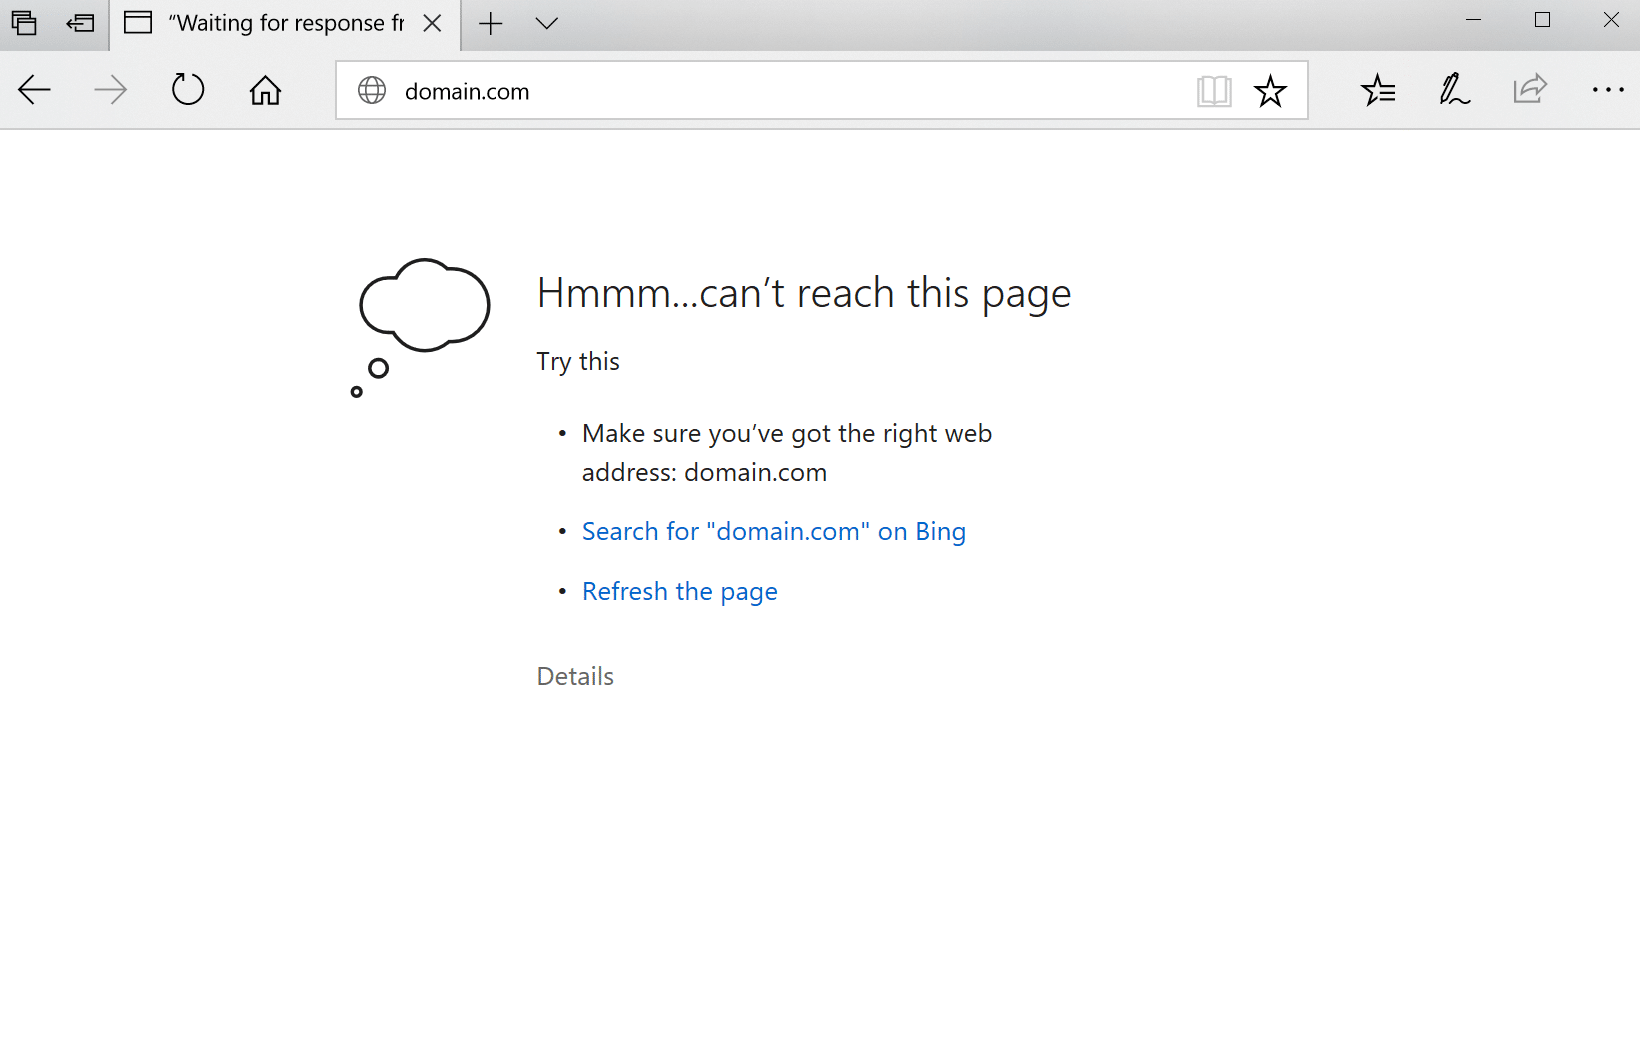 ERR_CONNECTION_REFUSED foutmelding in Microsoft Edge